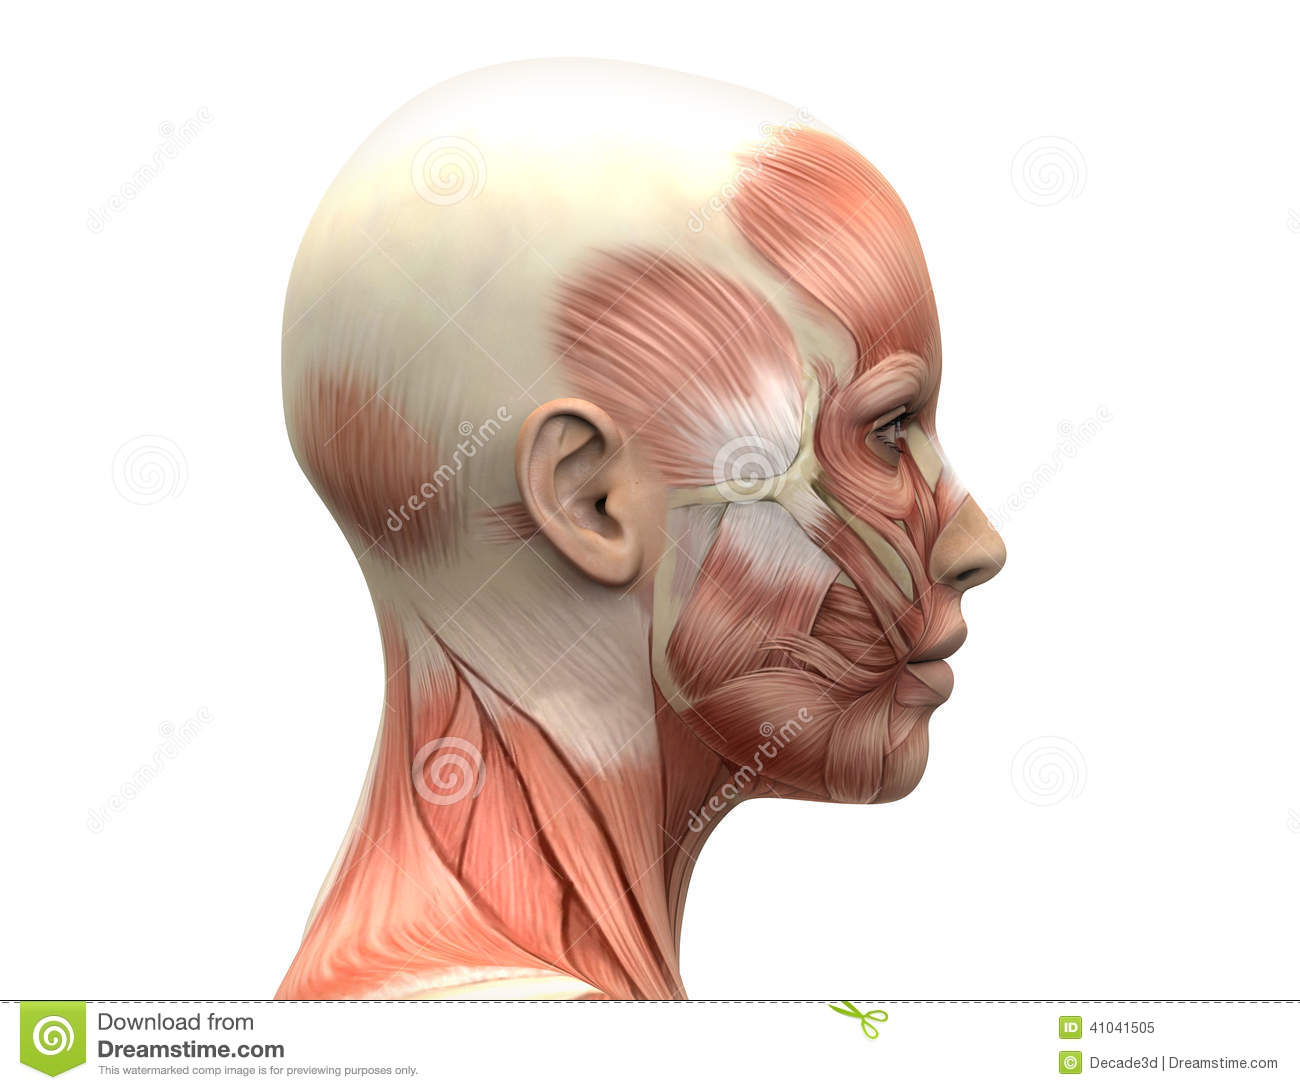 human head and neck muscle diagram labeled pontiac g6 wiring radio female muscles anatomy side view stock illustration